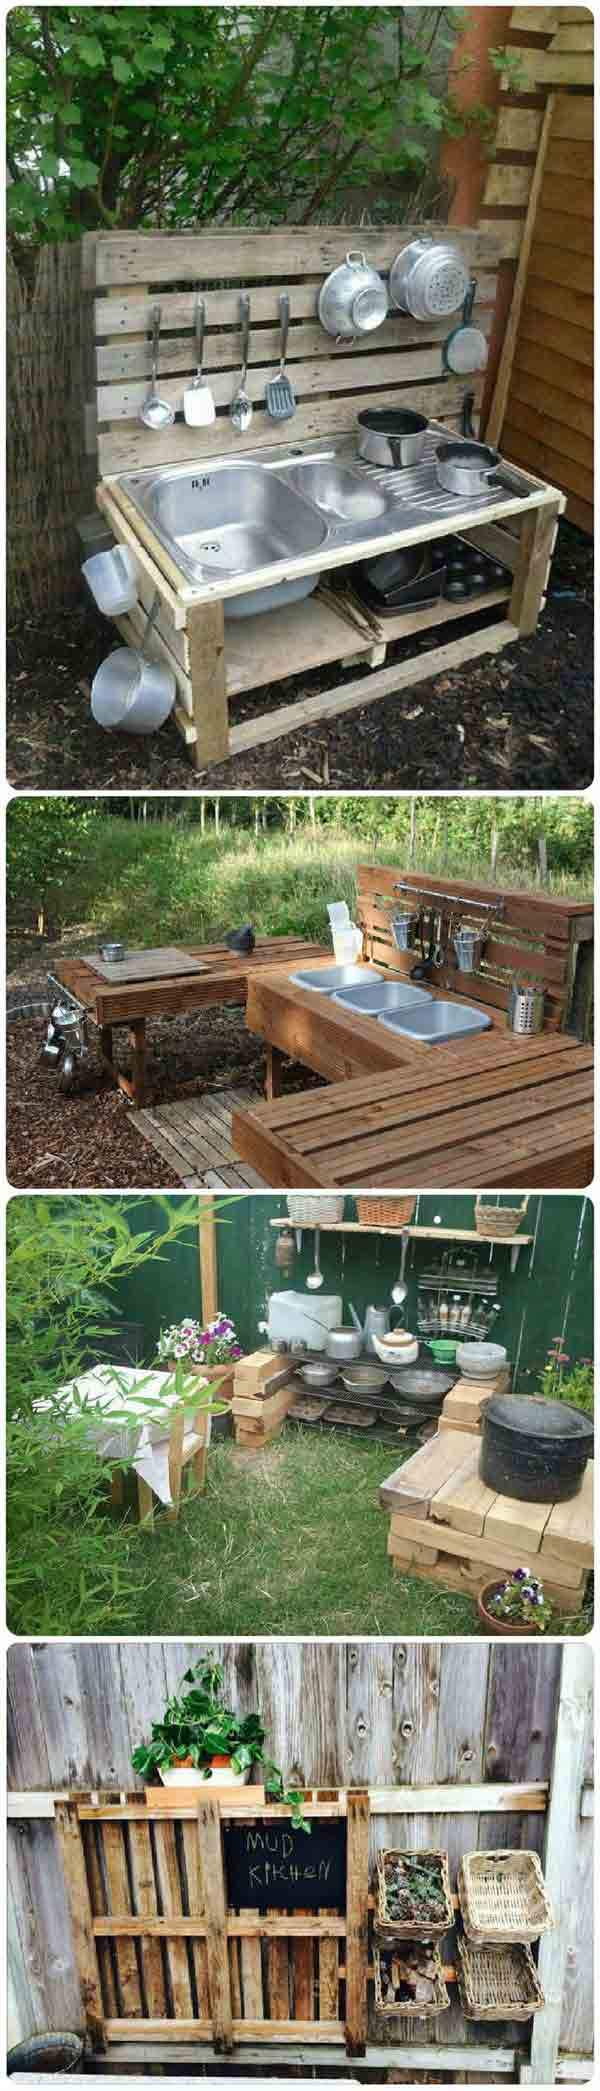 25 Playful DIY Backyard Projects To Surprise Your Kids ... on Diy Backyard Remodel id=24956